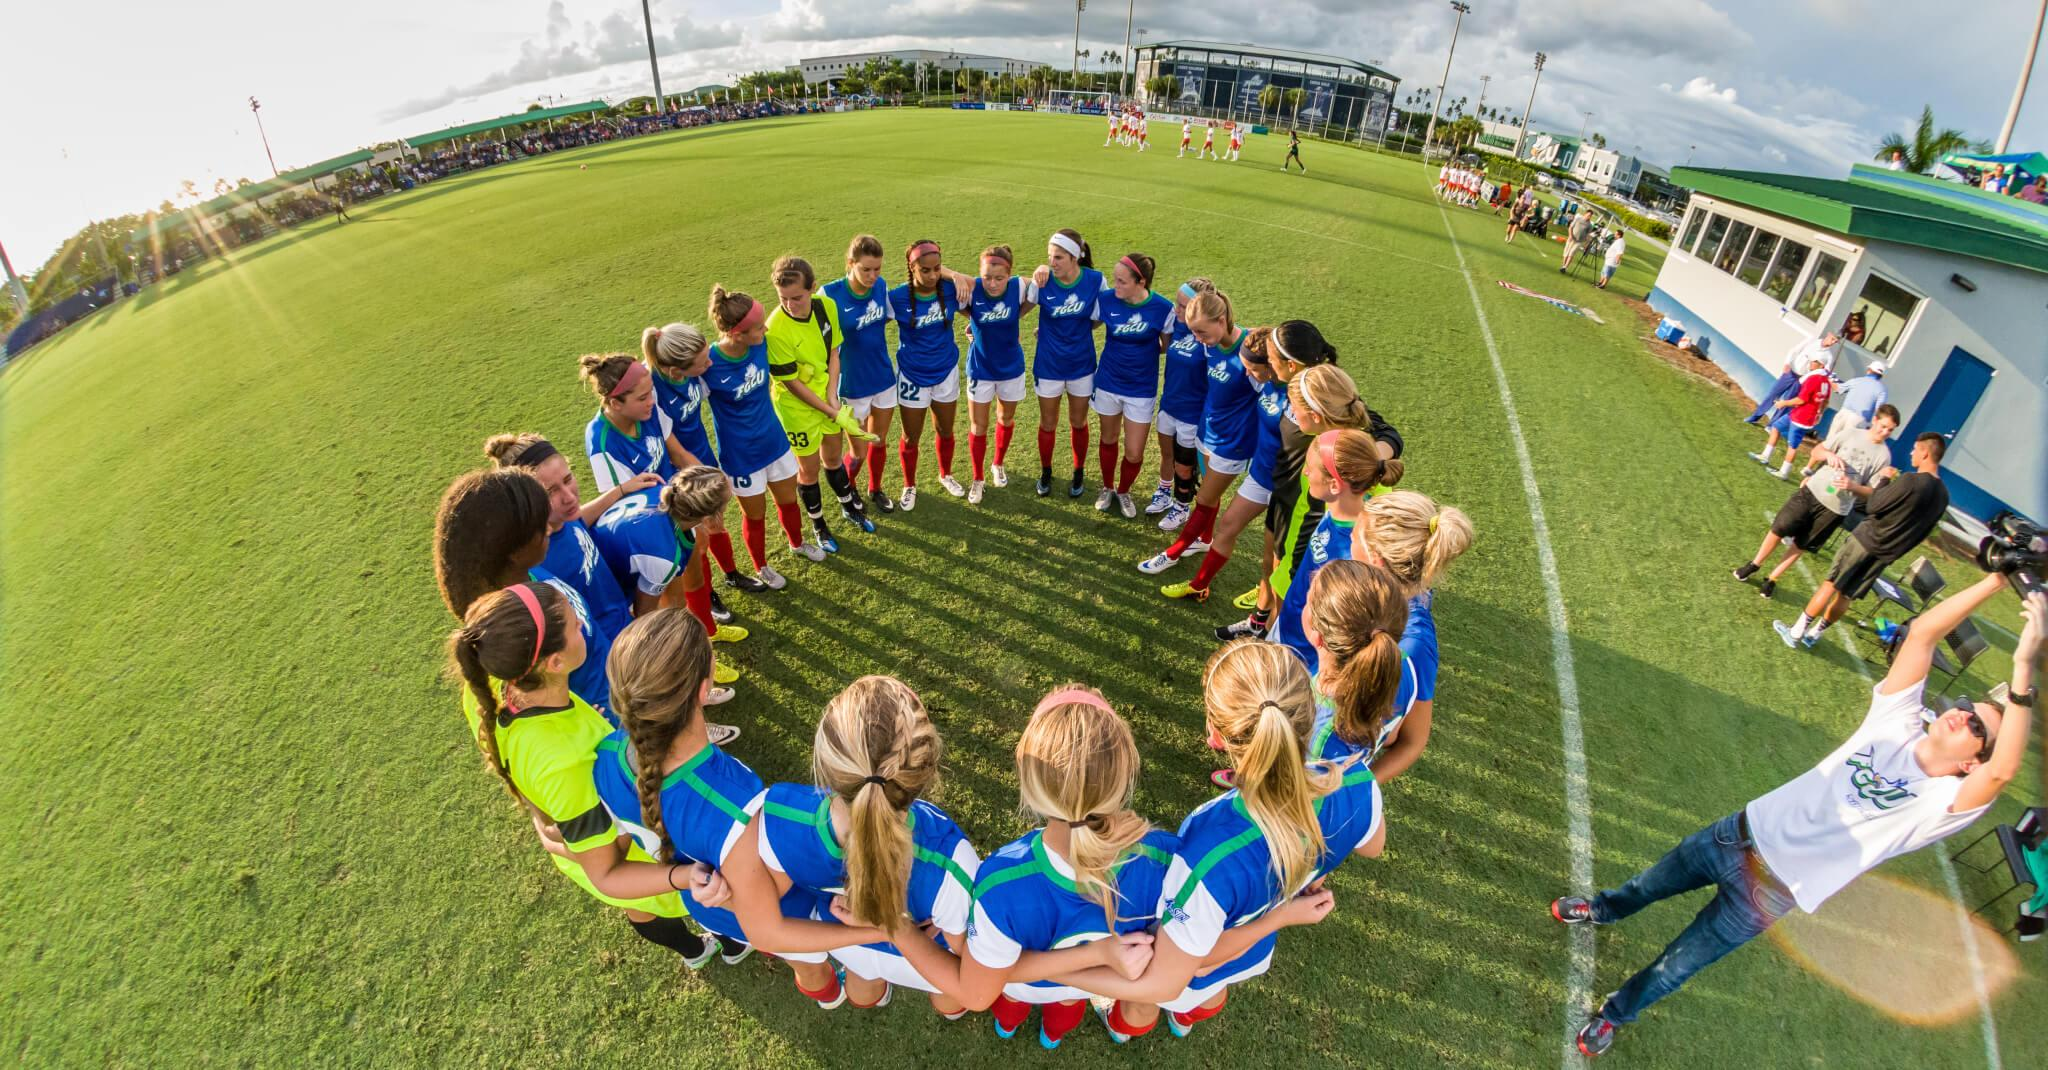 FGCU women's soccer looks to make it back to the Big Dance